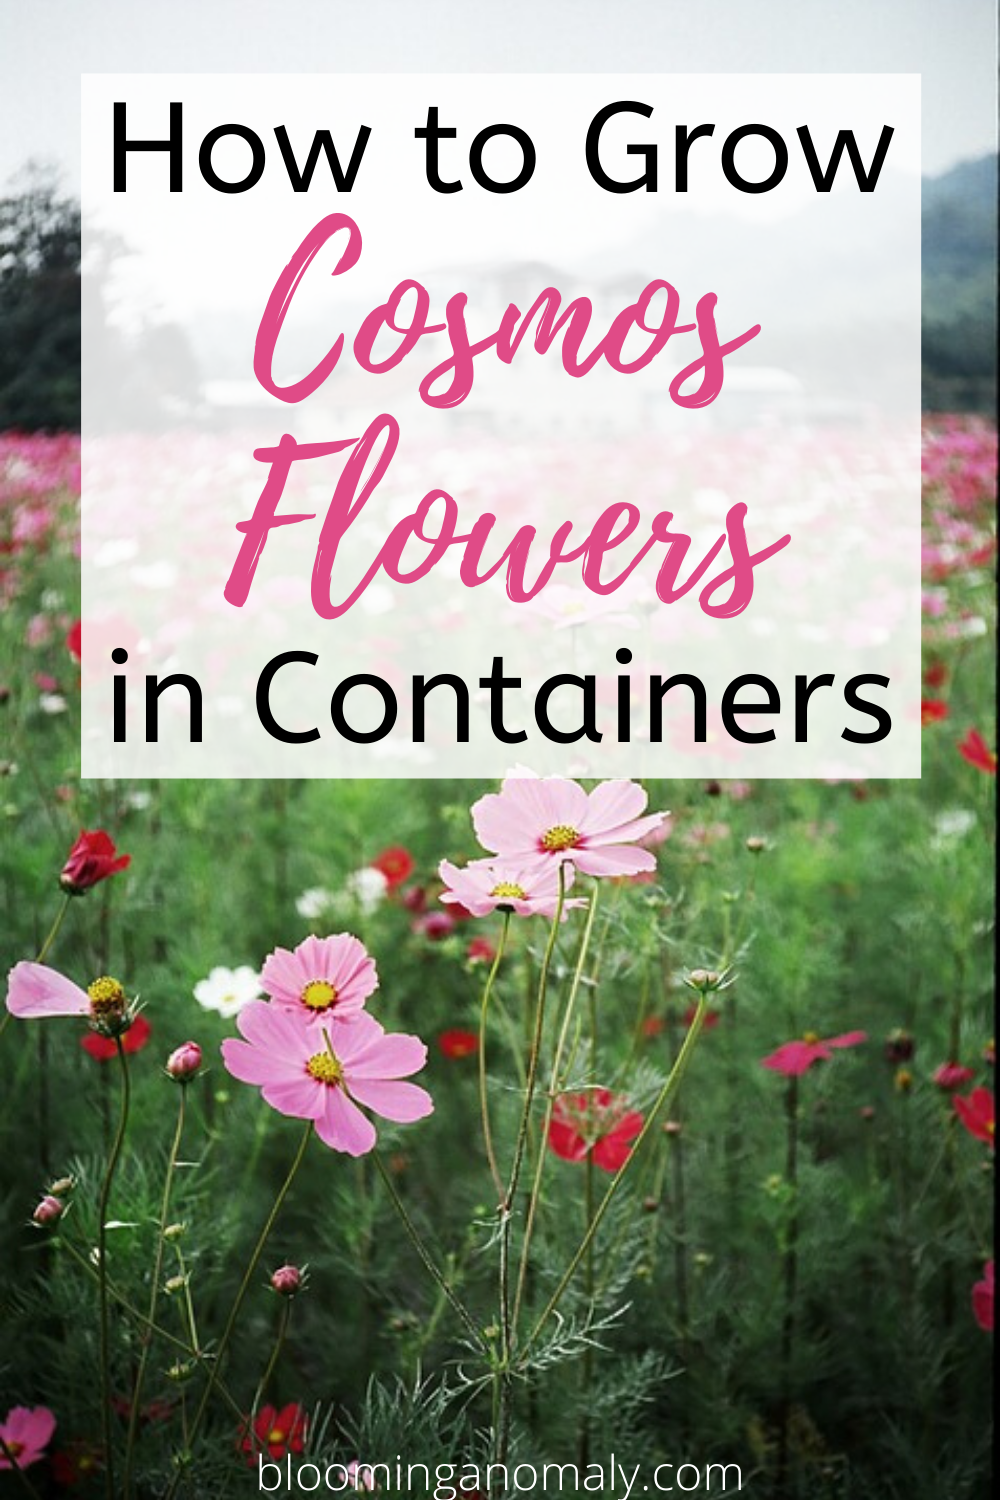 How To Grow Cosmos Flowers In Containers In 2020 Cosmos Flowers Garden Cosmos Flowers Container Flowers